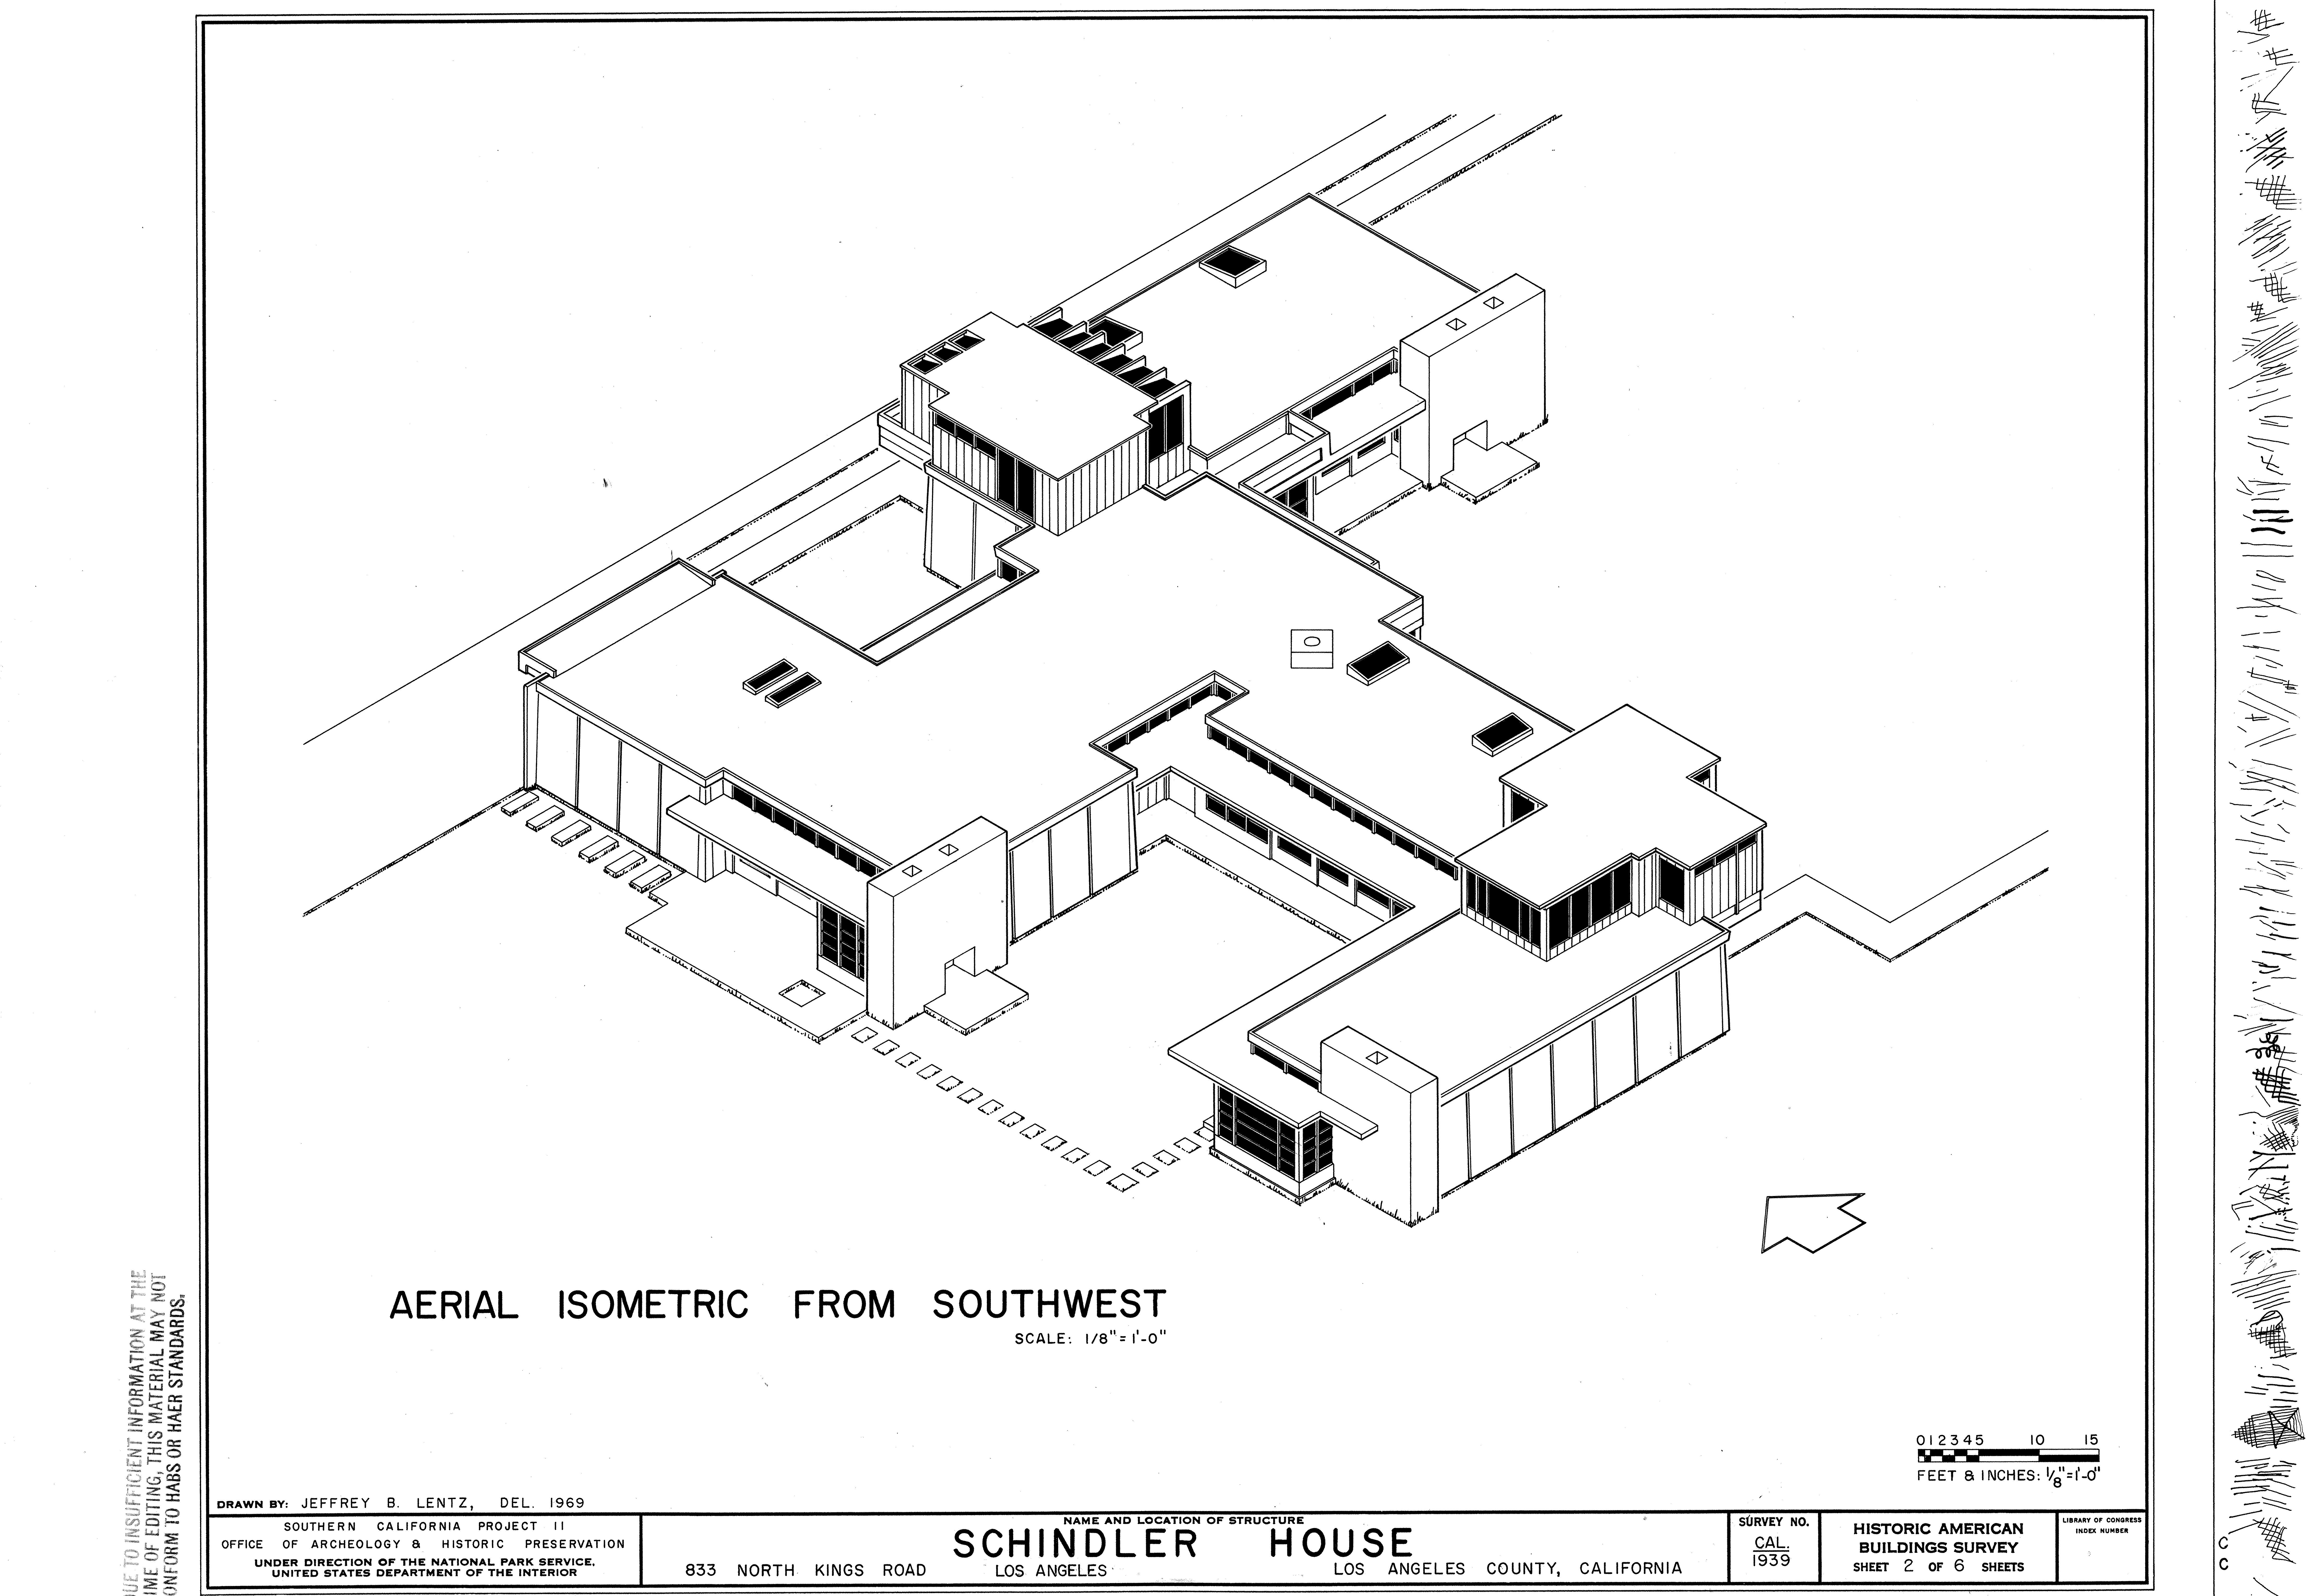 Aerial Isometric From Southwest Drawn by Jeffrey B. Lentz in 1969, the 1922 Schindler House in Los Angeles, California